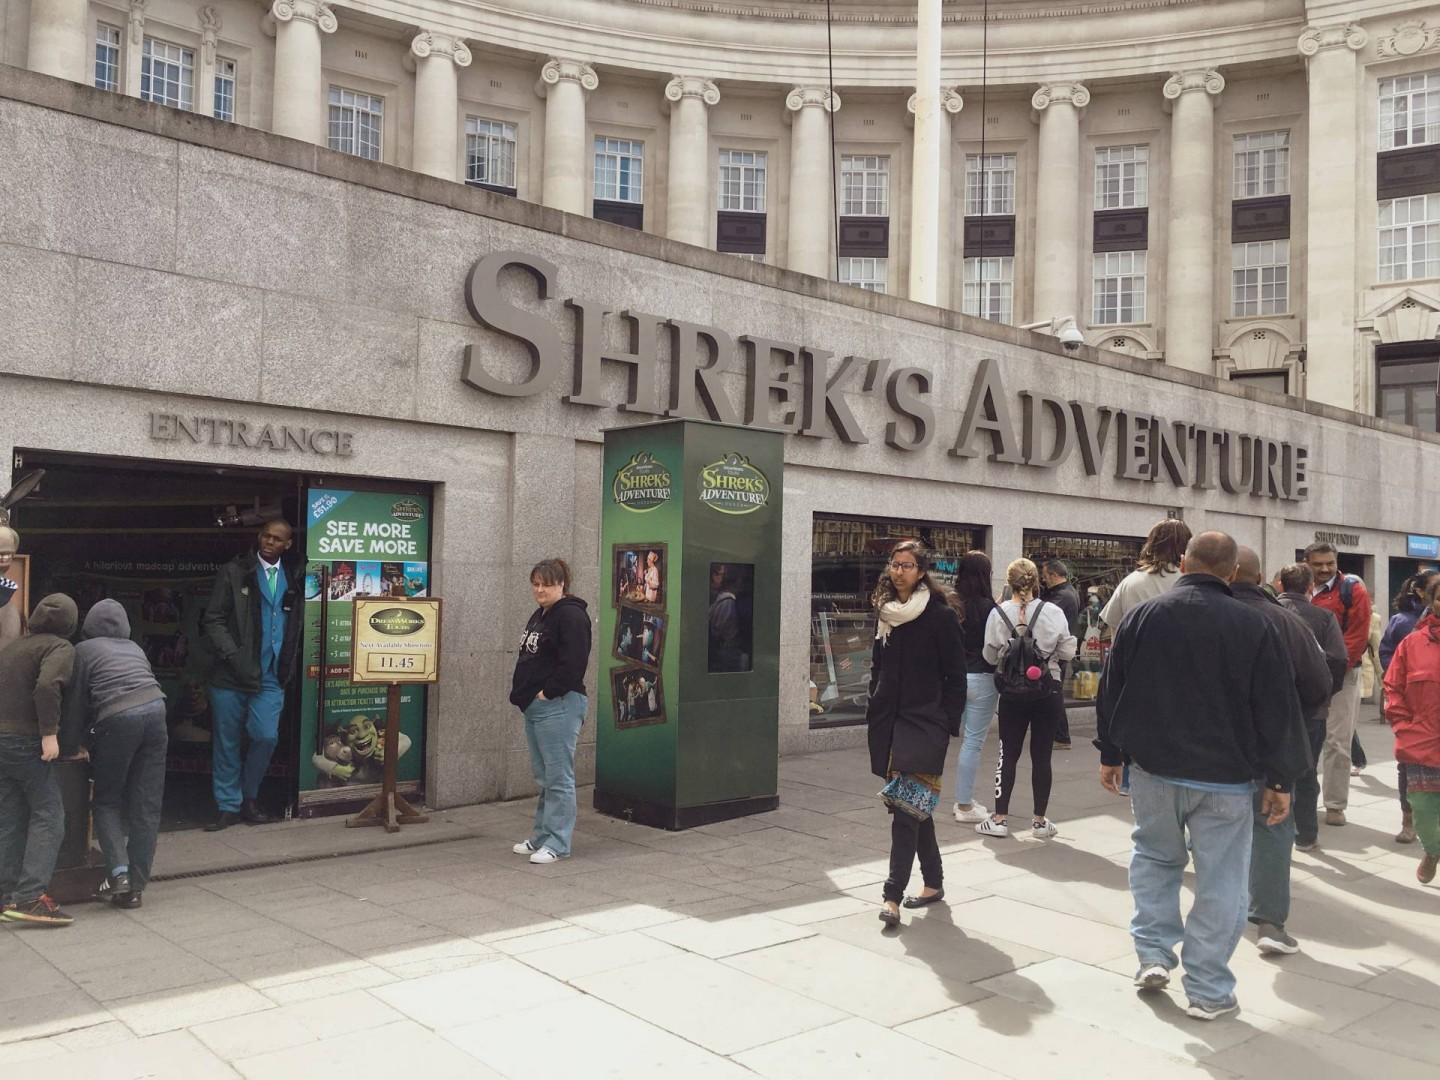 our visit to London with a toddler, tween and teenager began with a visit to Shrek's Adventure